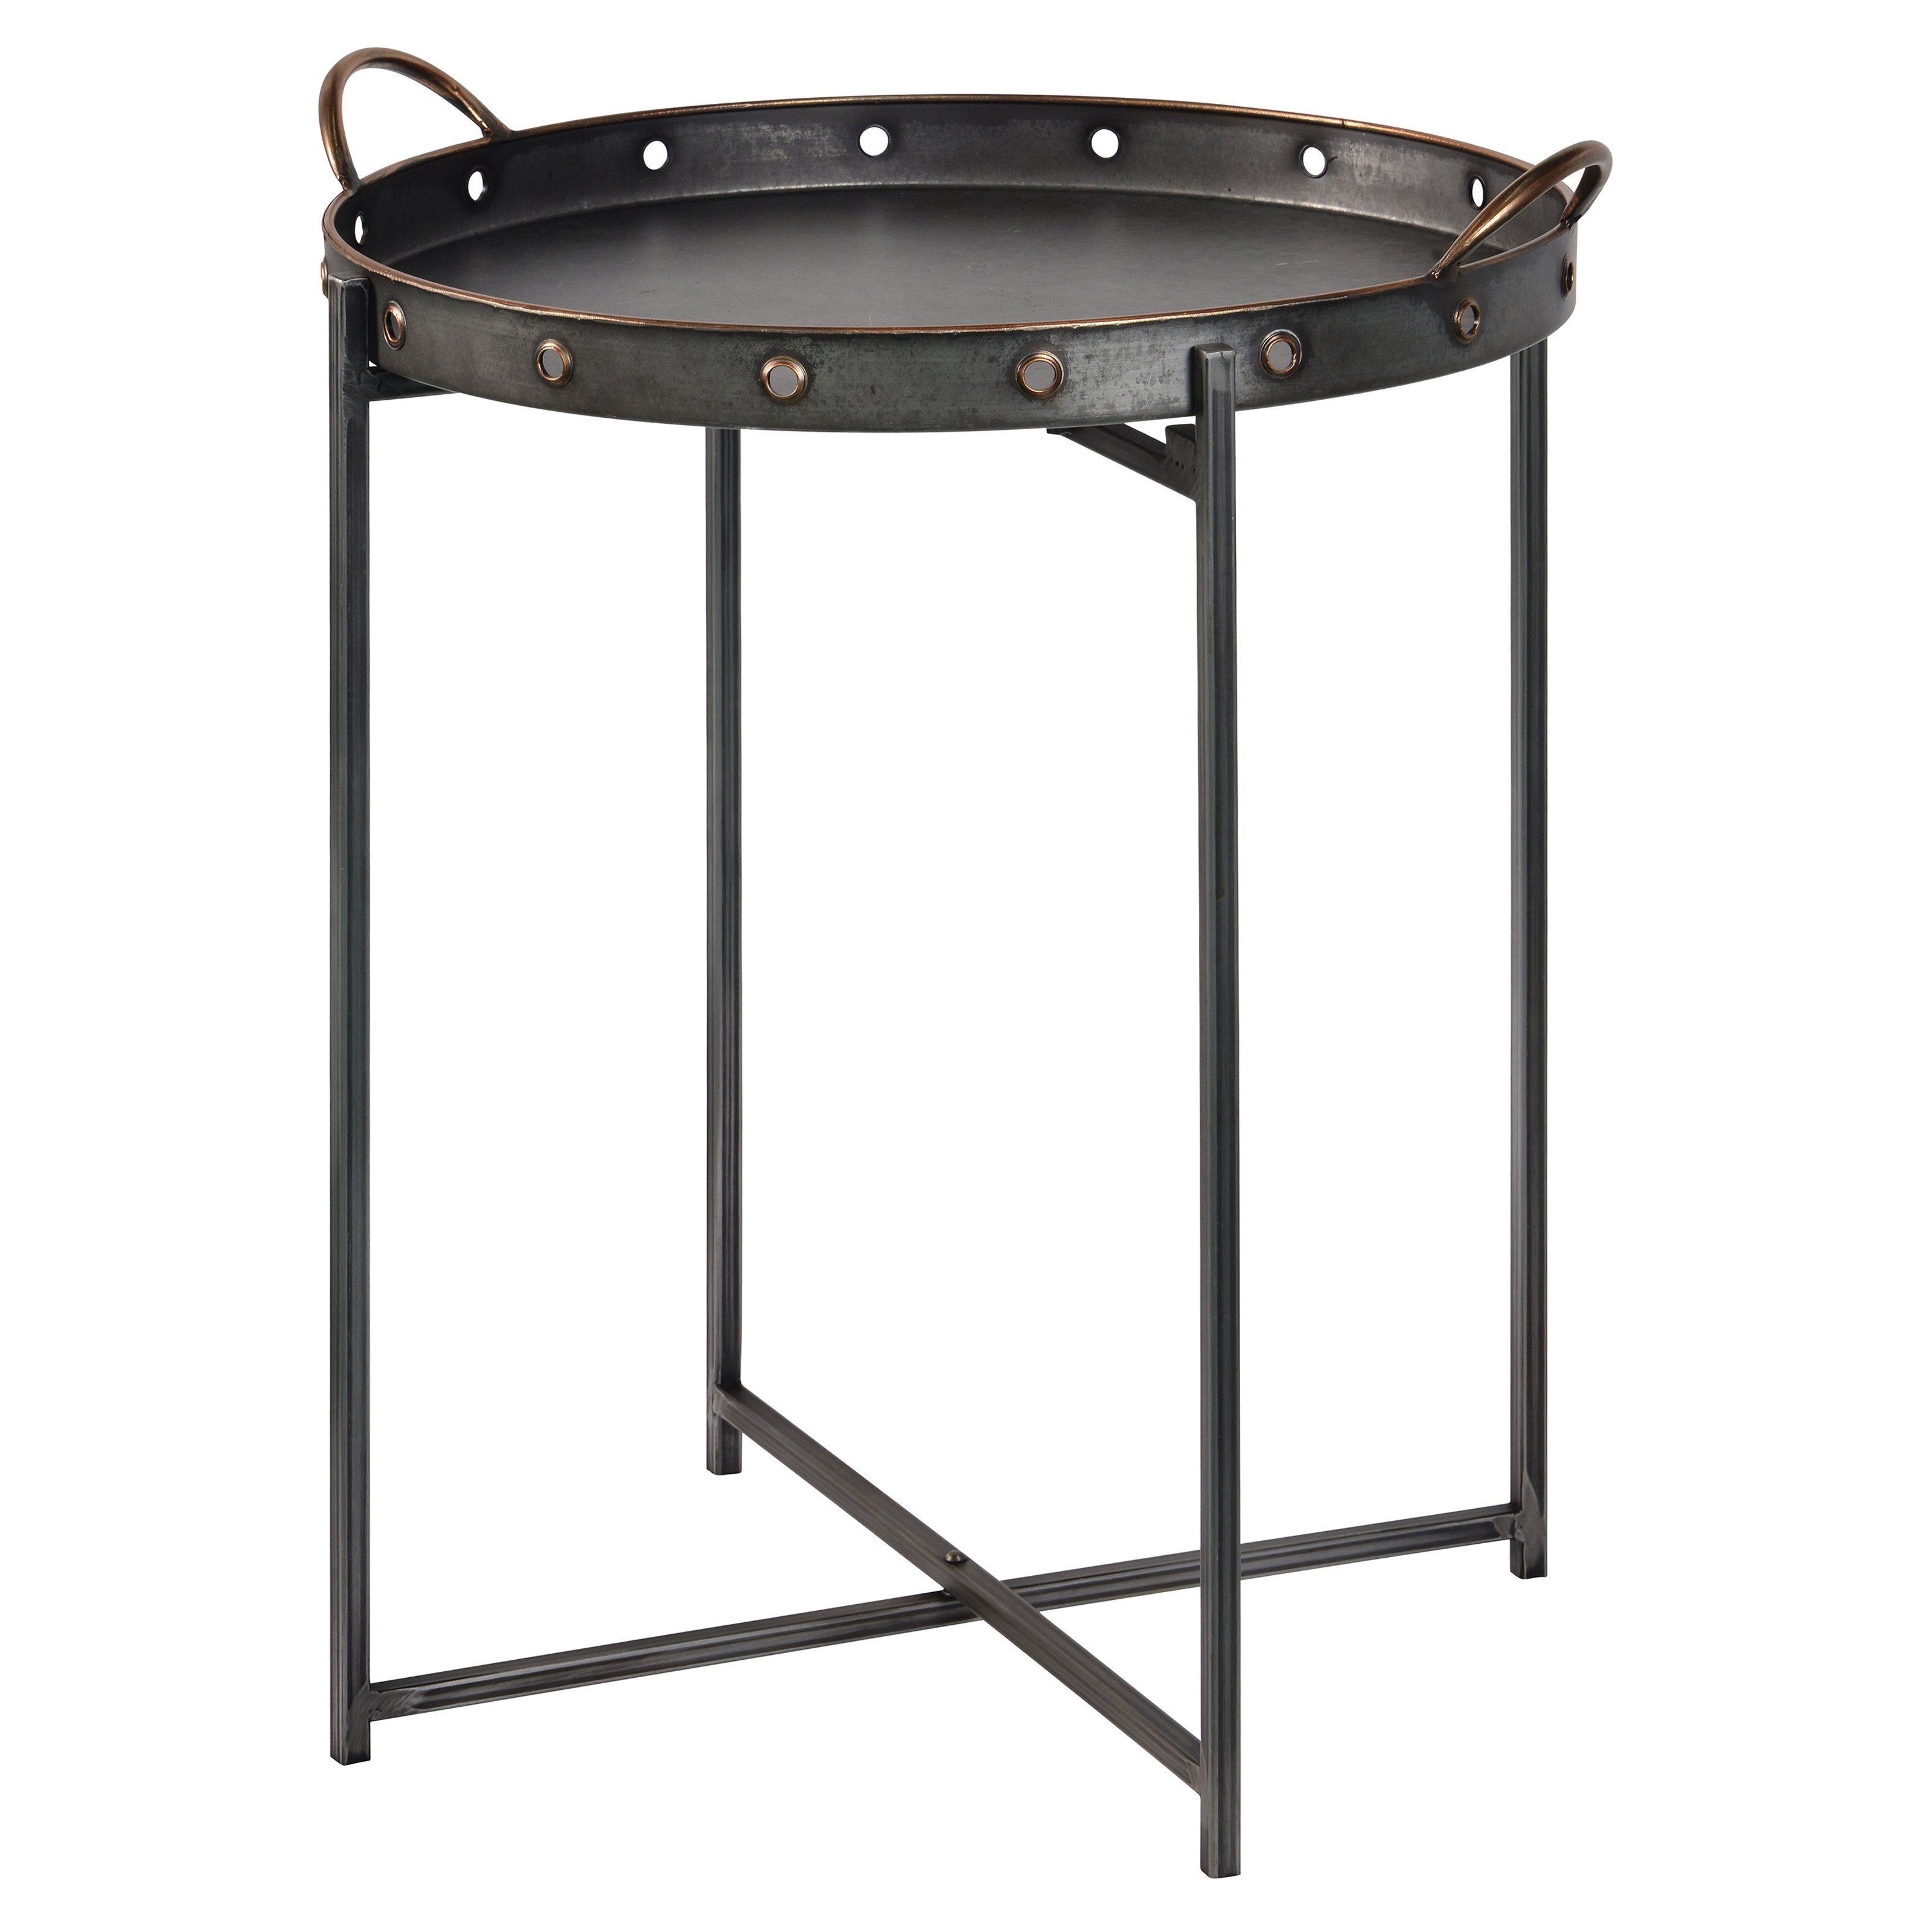 Cooper Classics Davey 20 Inch Round Tray Table